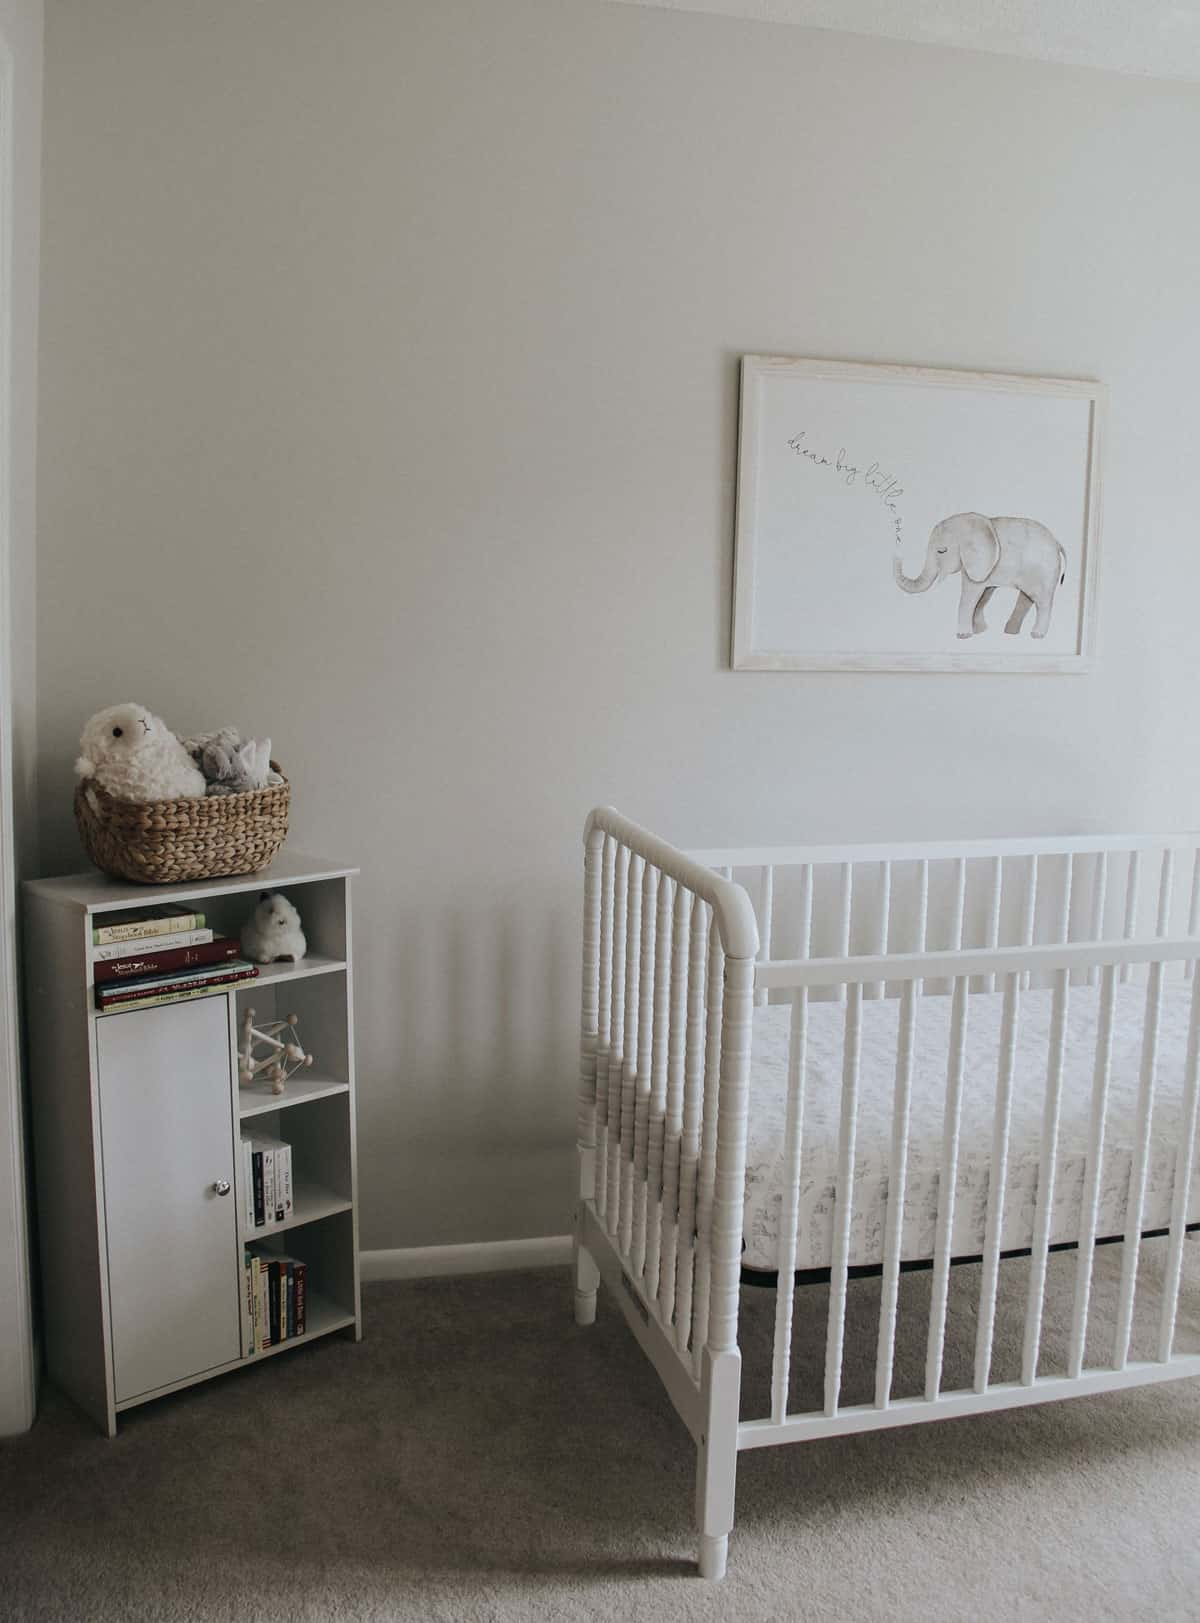 Baby bookshelf, stuffed animals and a white Jenny Lind crib in a nursery.